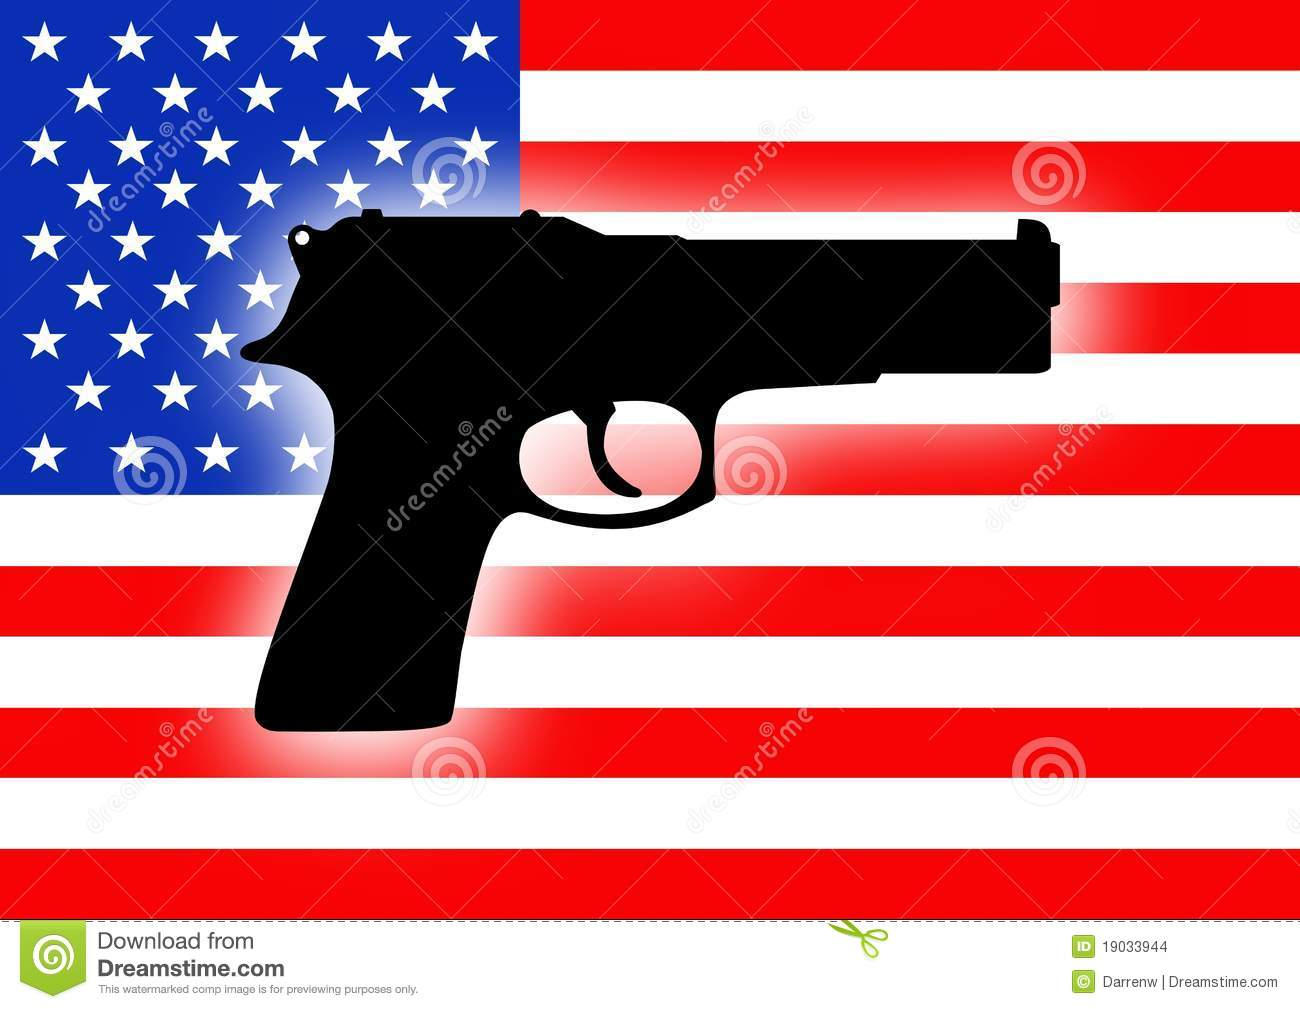 essay gun violence america This sample research paper on gun violence in the united states, and why instances of it seem to be on the rise,  it seems here in america, there is always a fine line between how much freedom we may surrender in the name of safety,  essay on gun control essay on gun violence gun control gun control reform gun regulation gun.